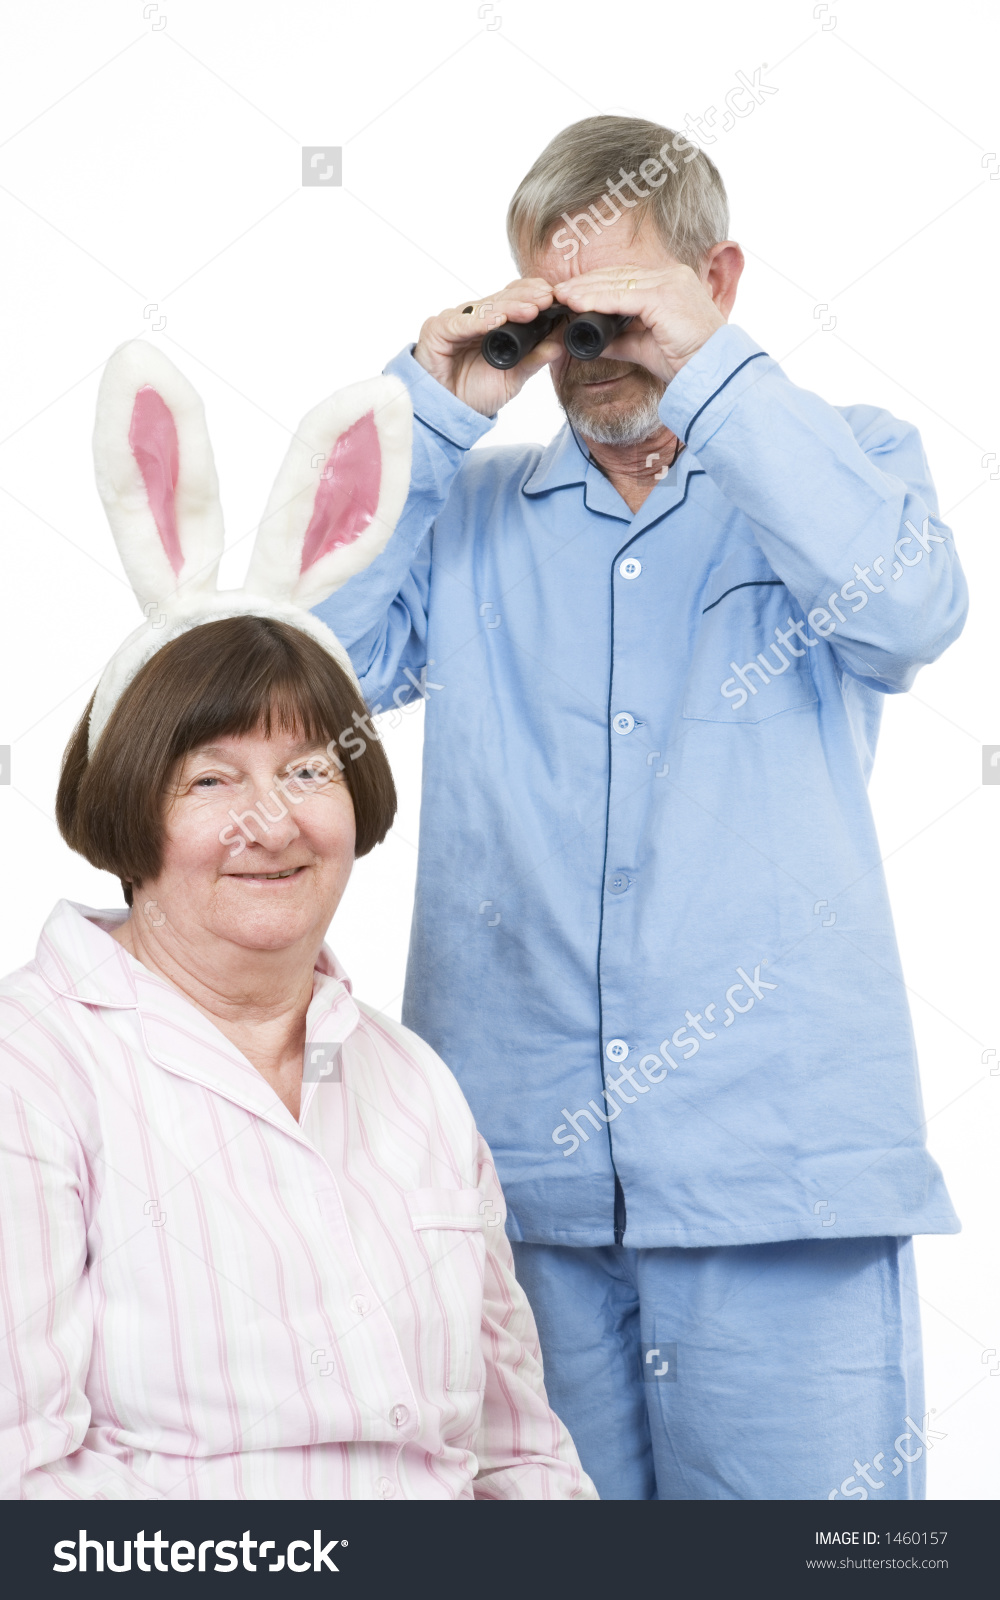 Title: Senior couple where is the rabbit He's obviously searching for new glasses